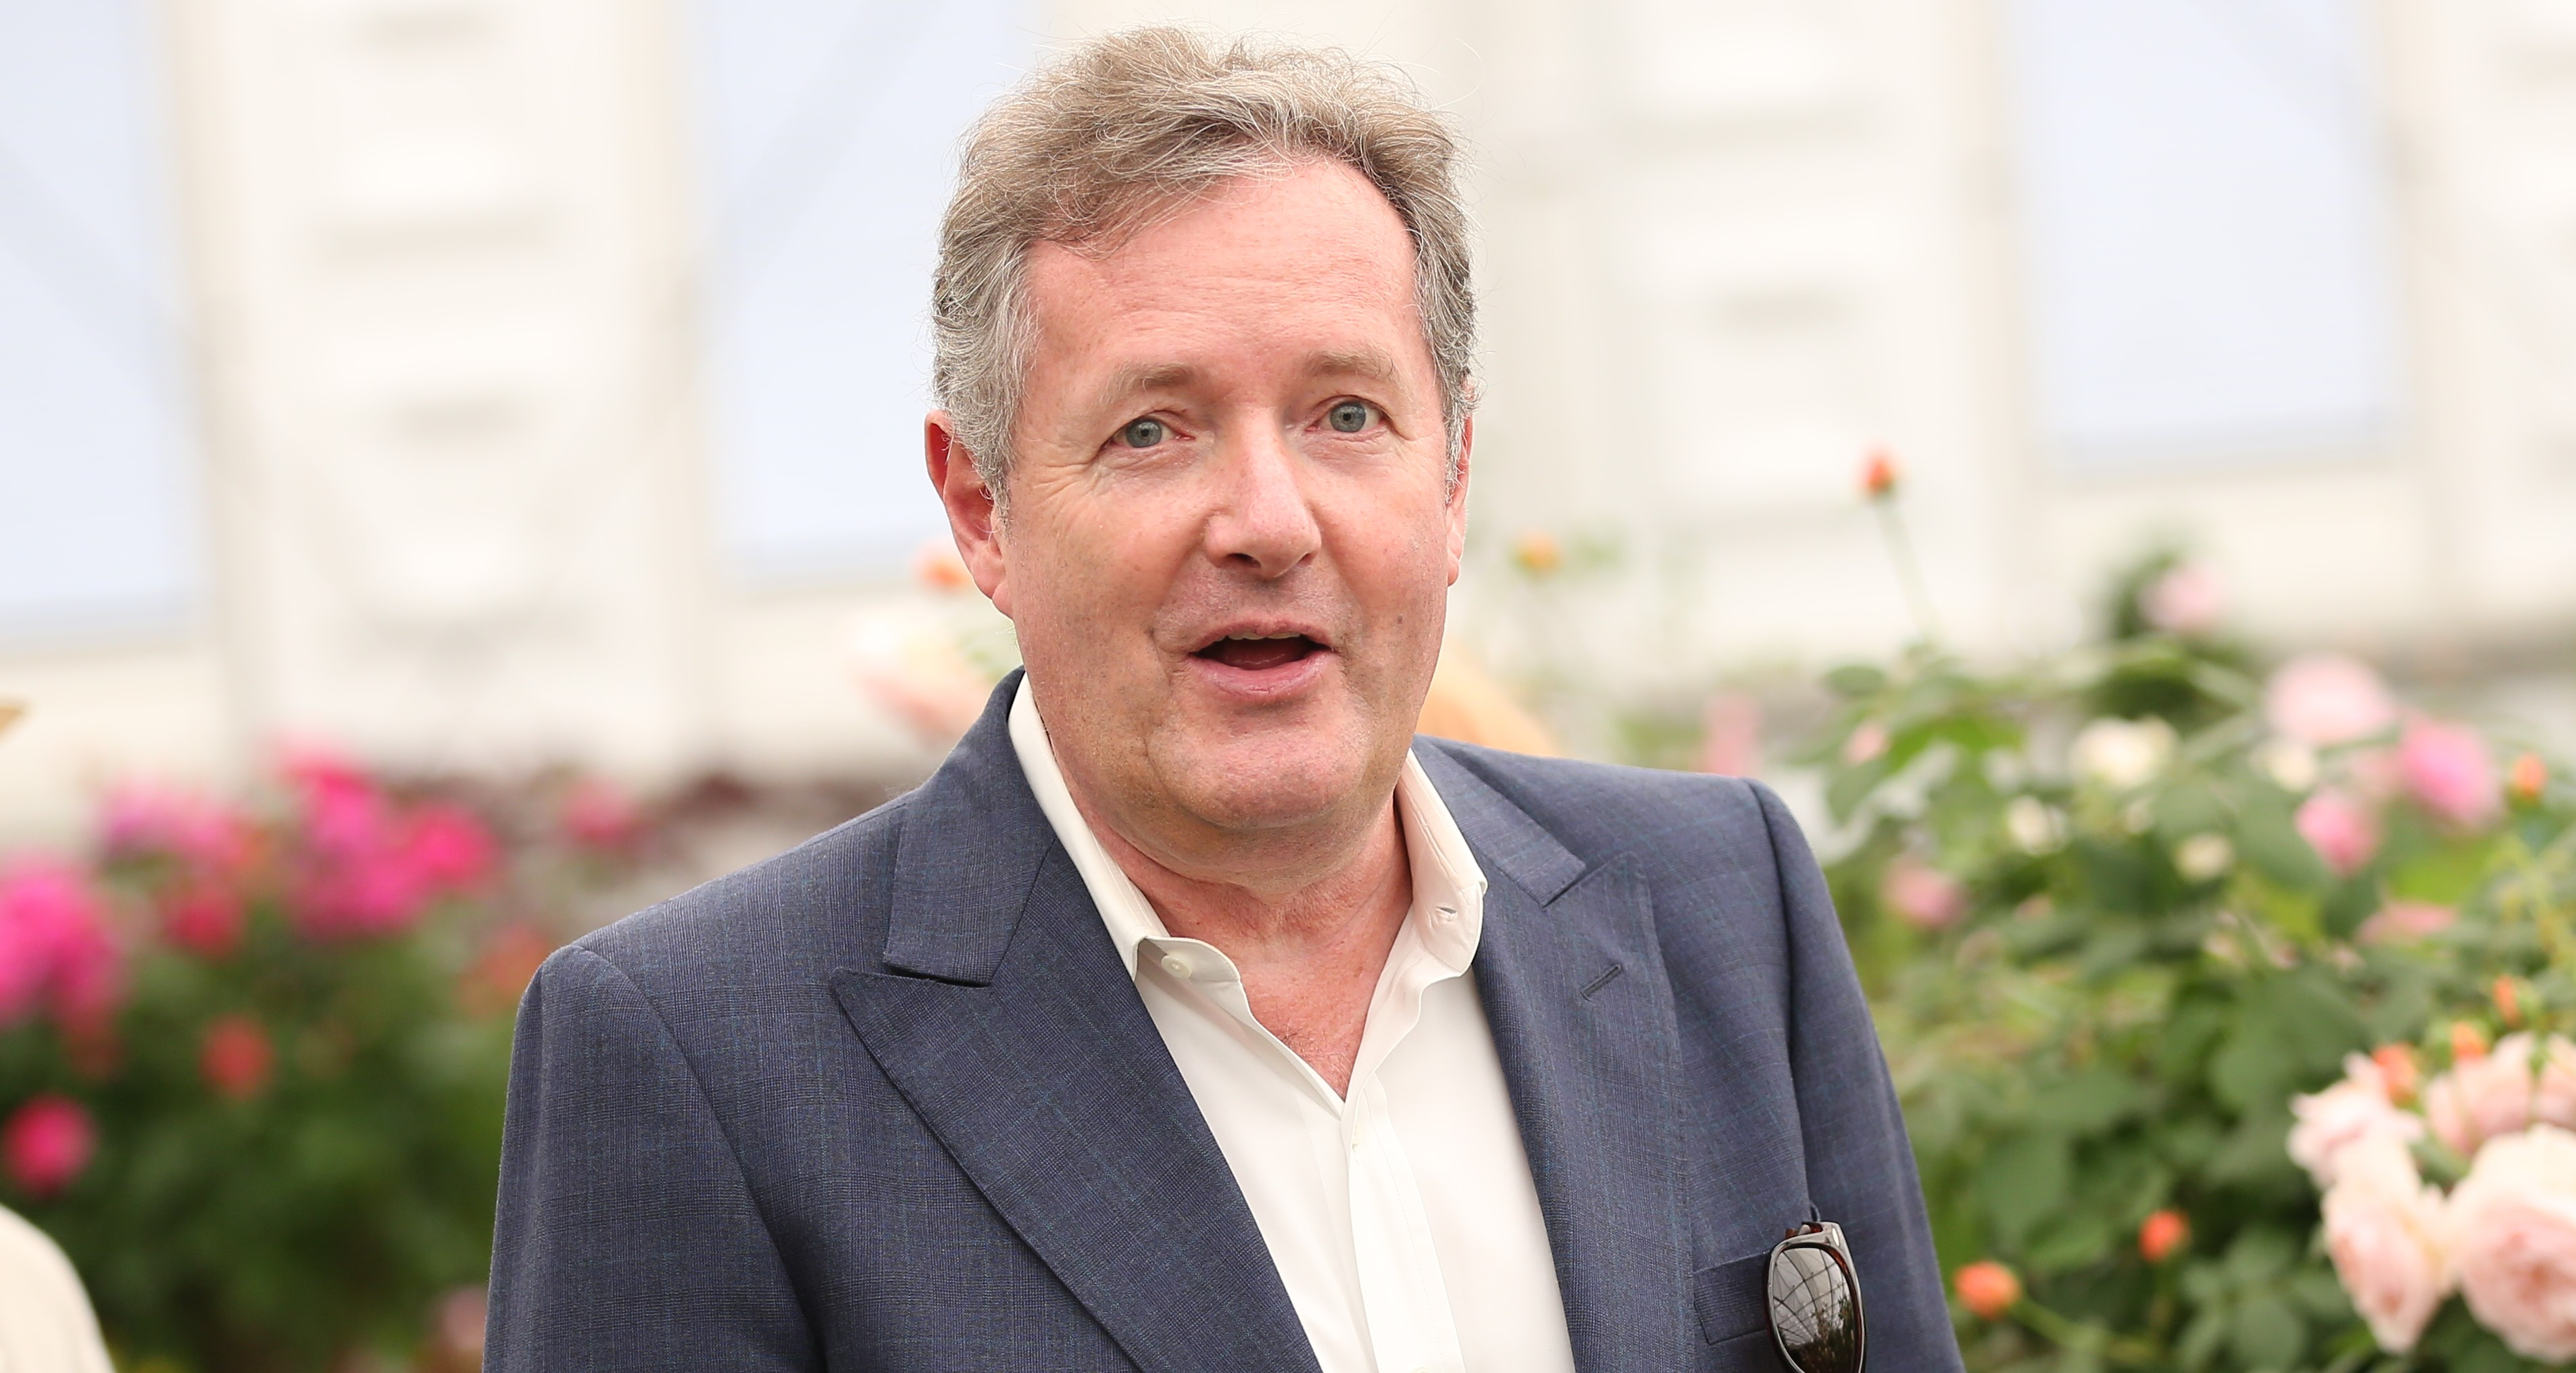 Piers Morgan mocks claims he's lost two stone